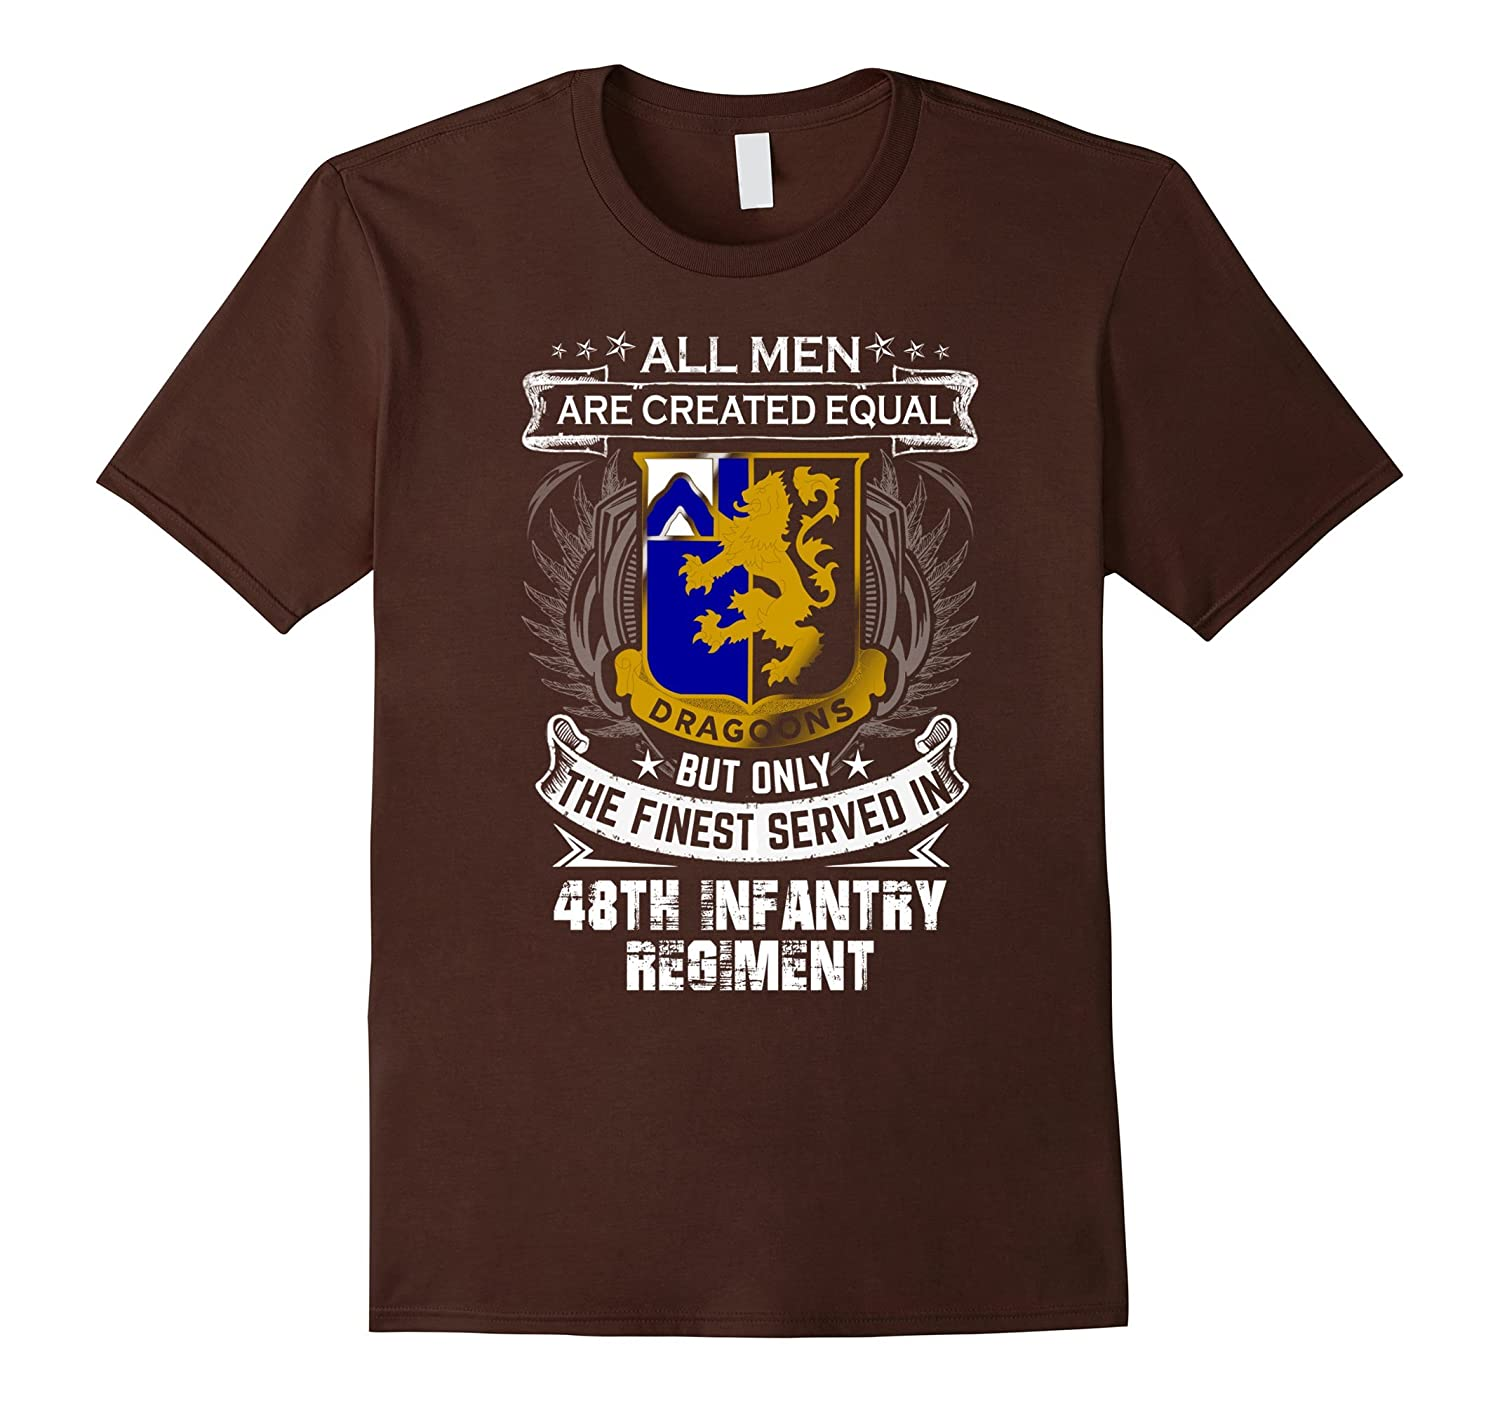 a5936b8a 48th Infantry Regiment T-shirt , All men are created equal b-Art ...